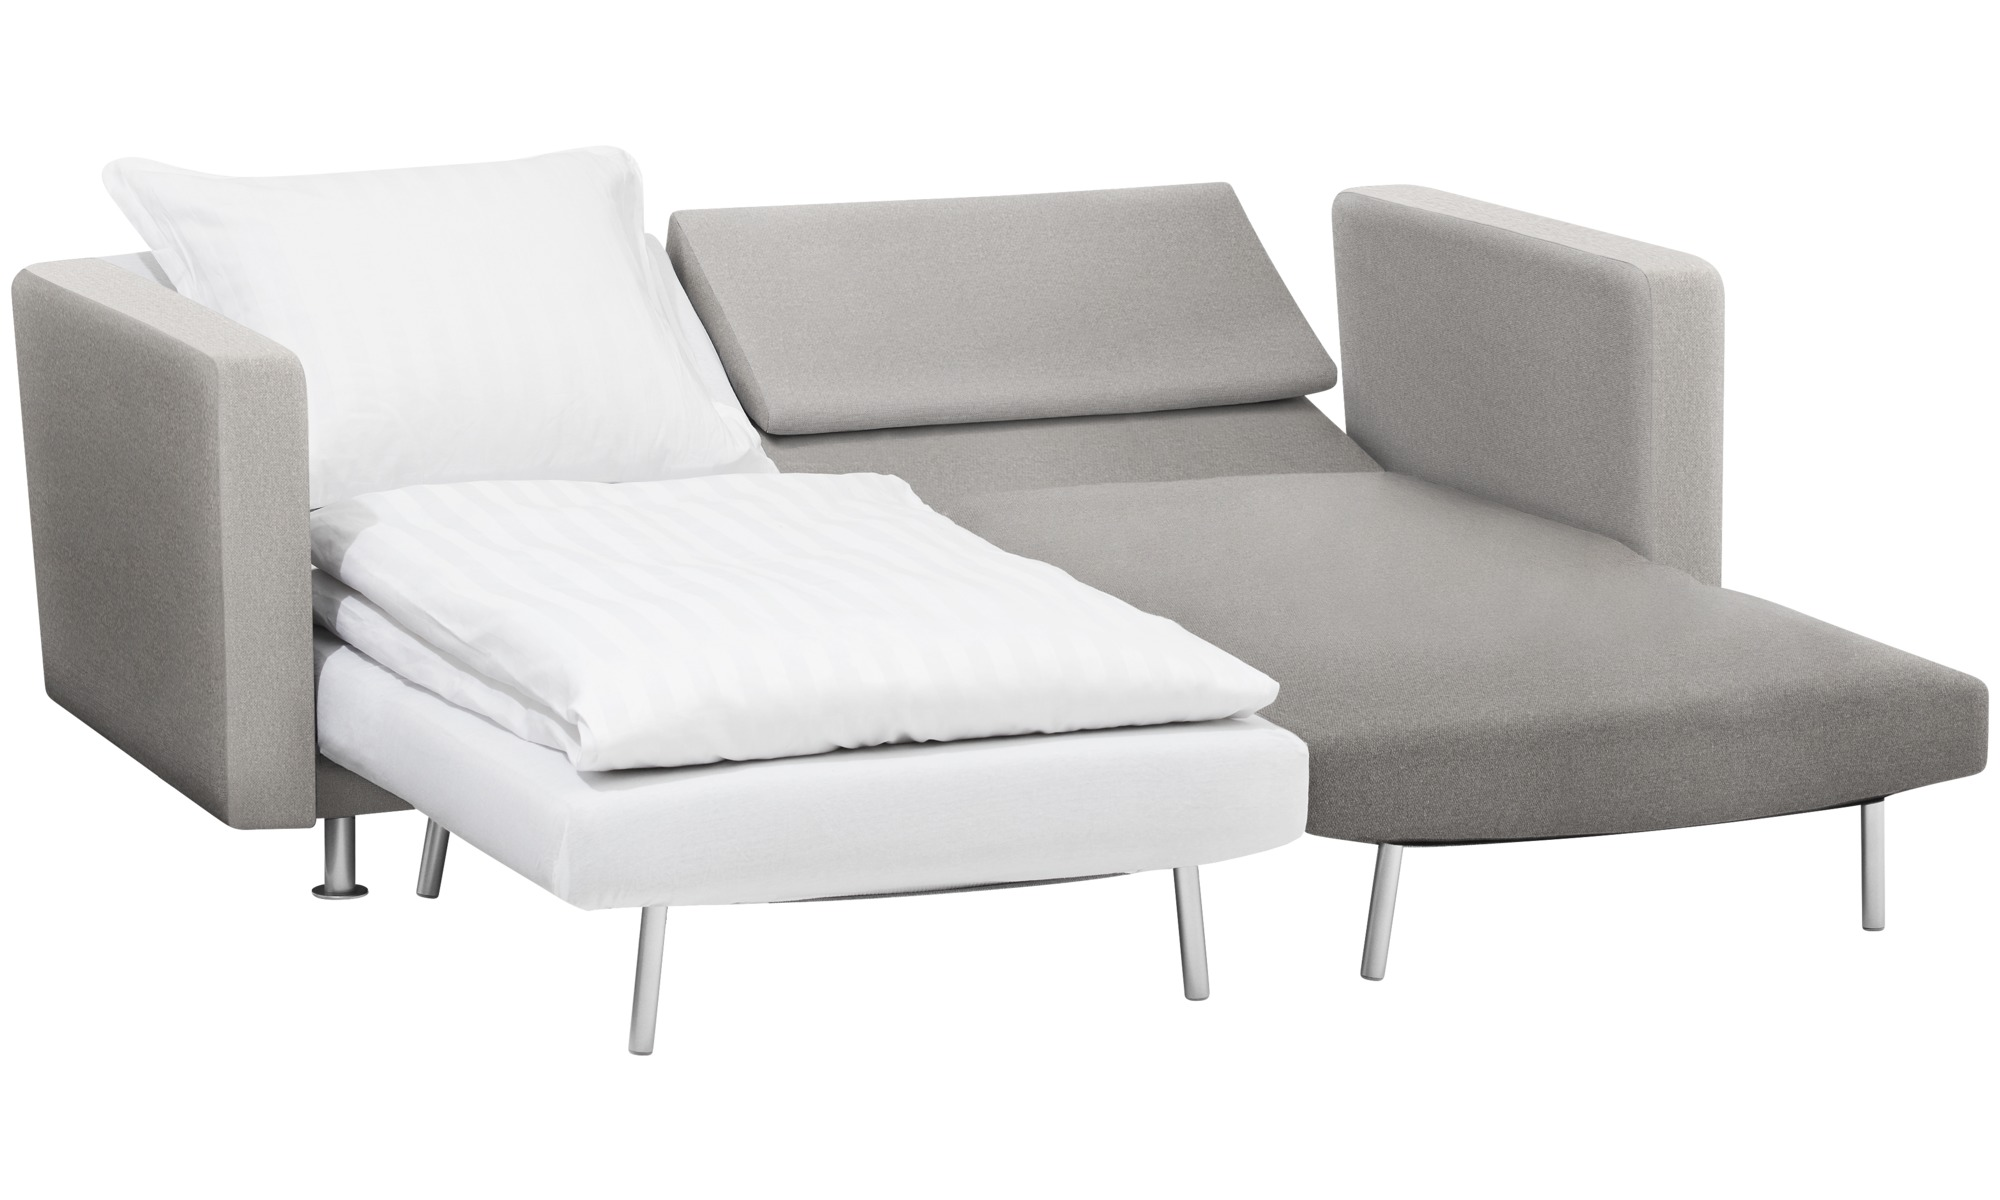 boconcept melo reclining sofa bed htl range beds 2 with and sleeping